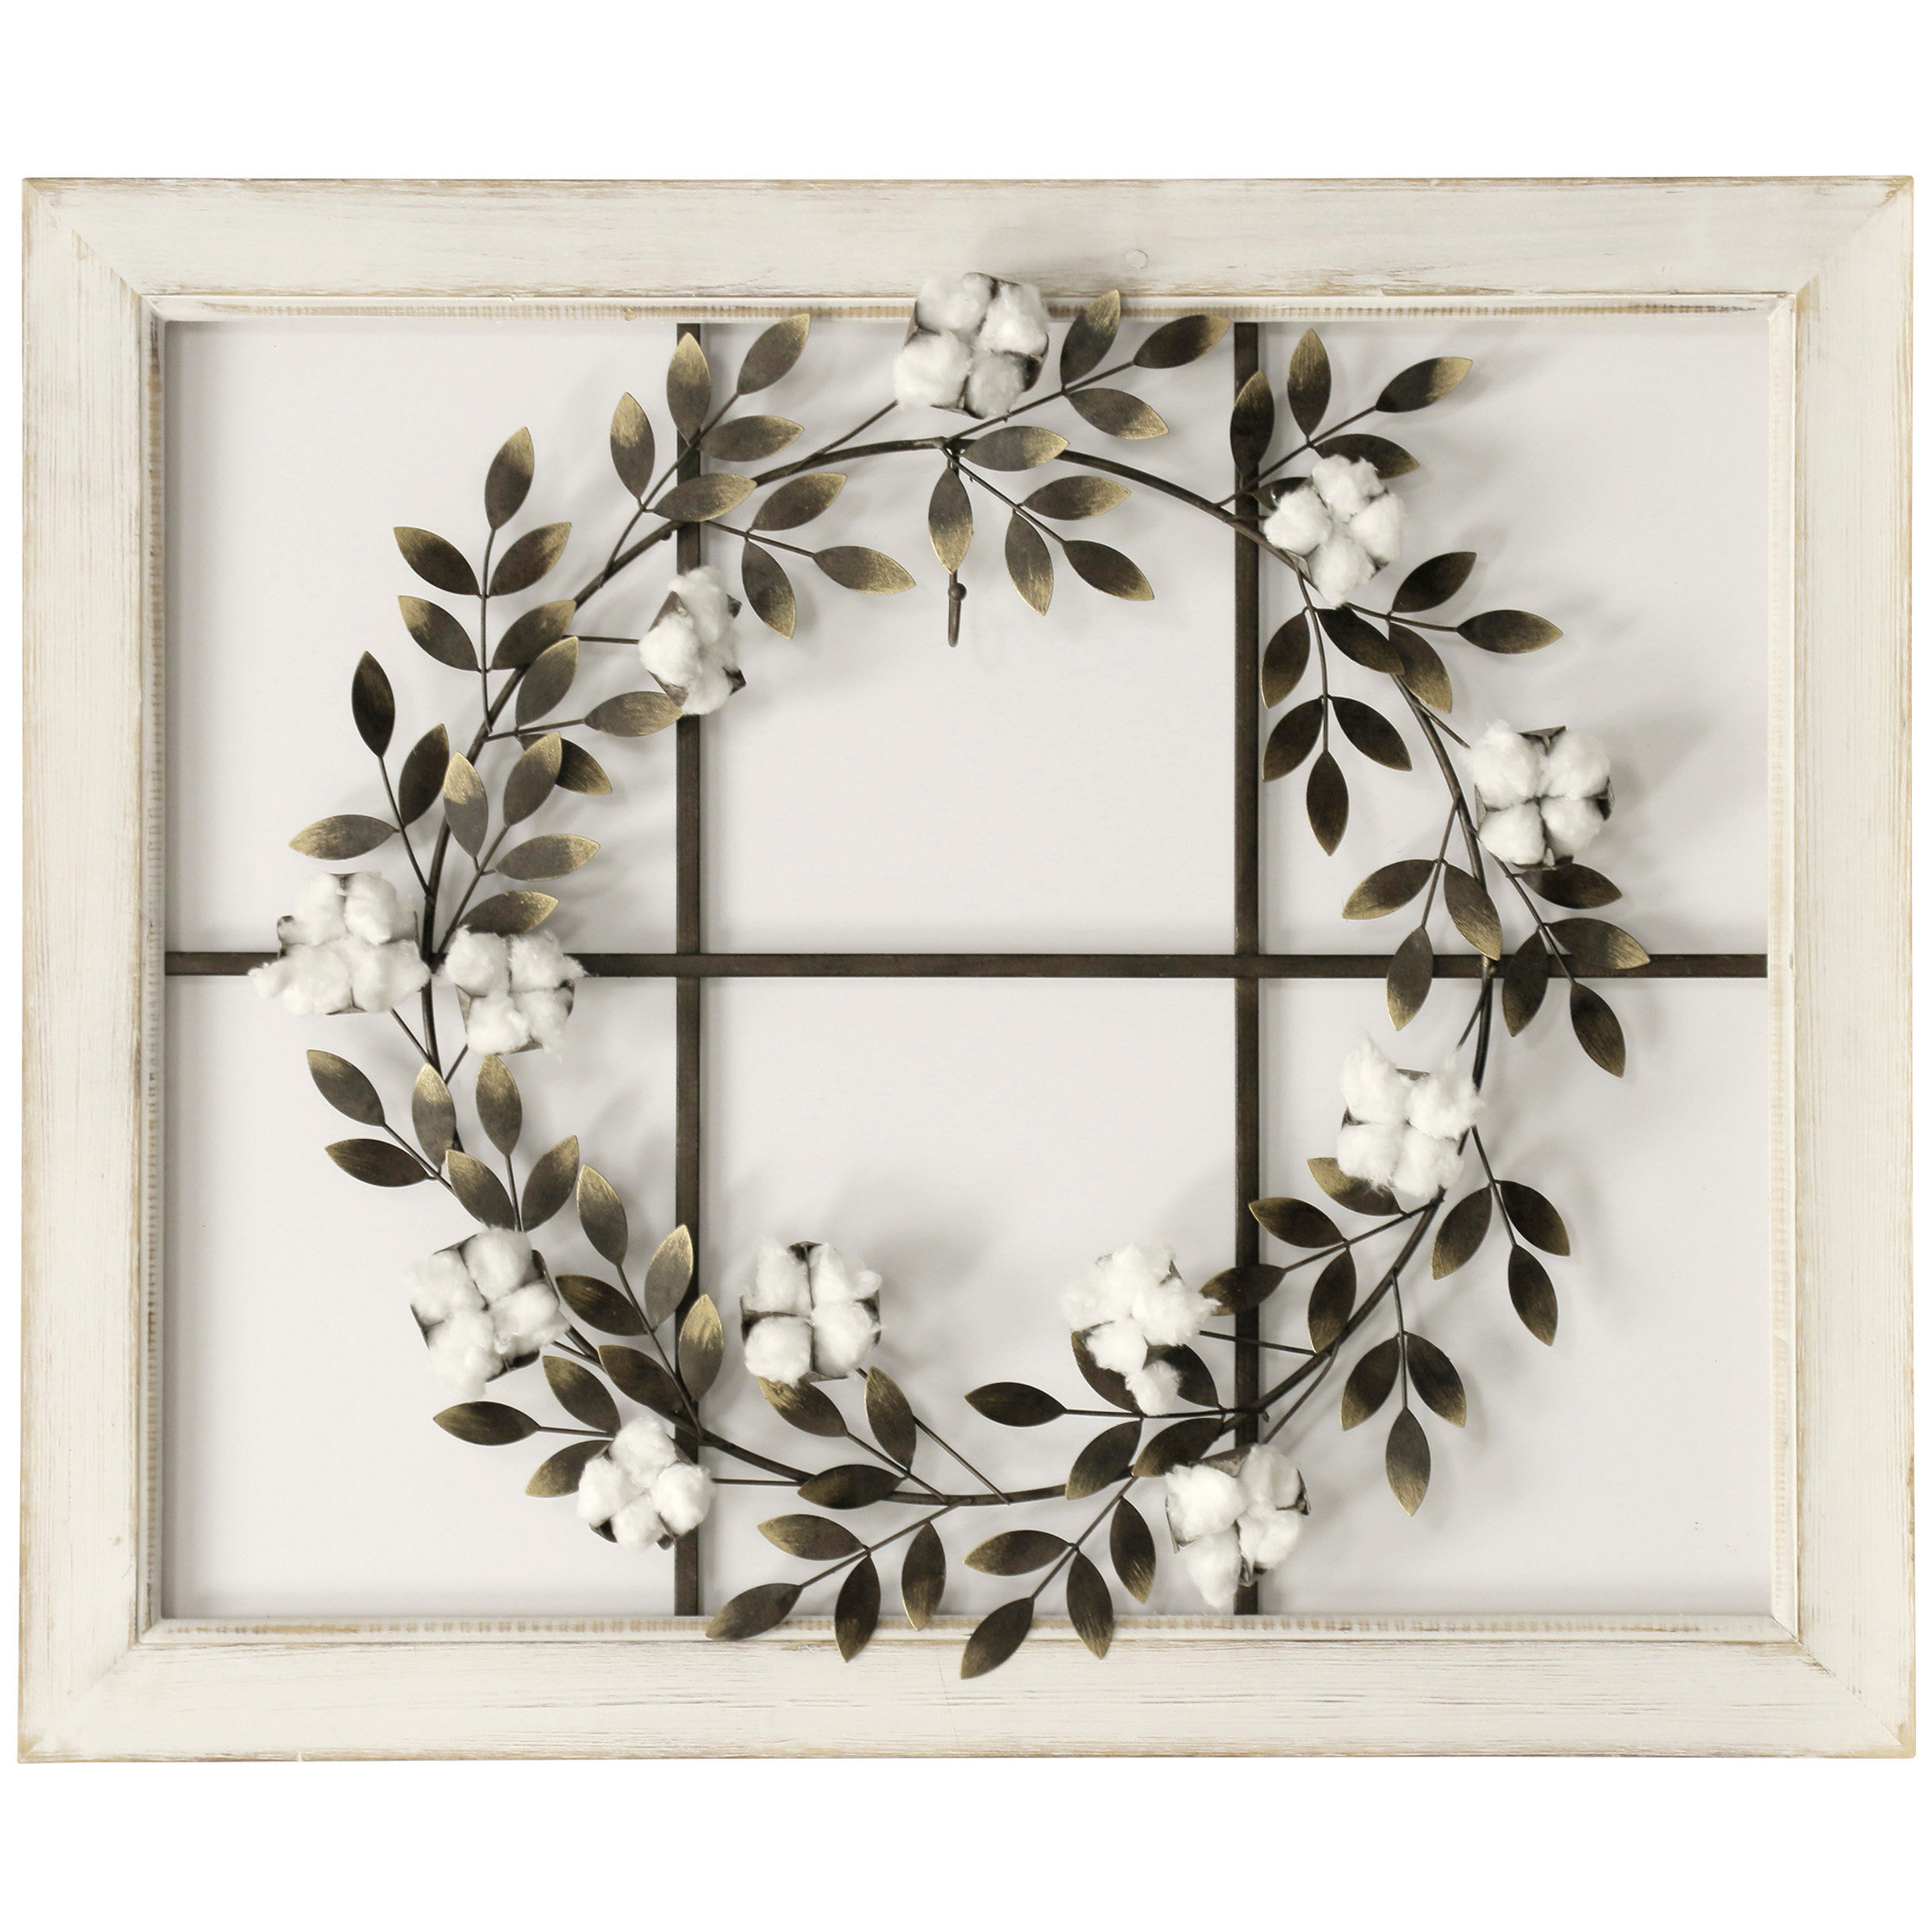 Floral Wreath Wood Framed Wall Décor intended for Desford Leaf Wall Decor (Image 13 of 30)